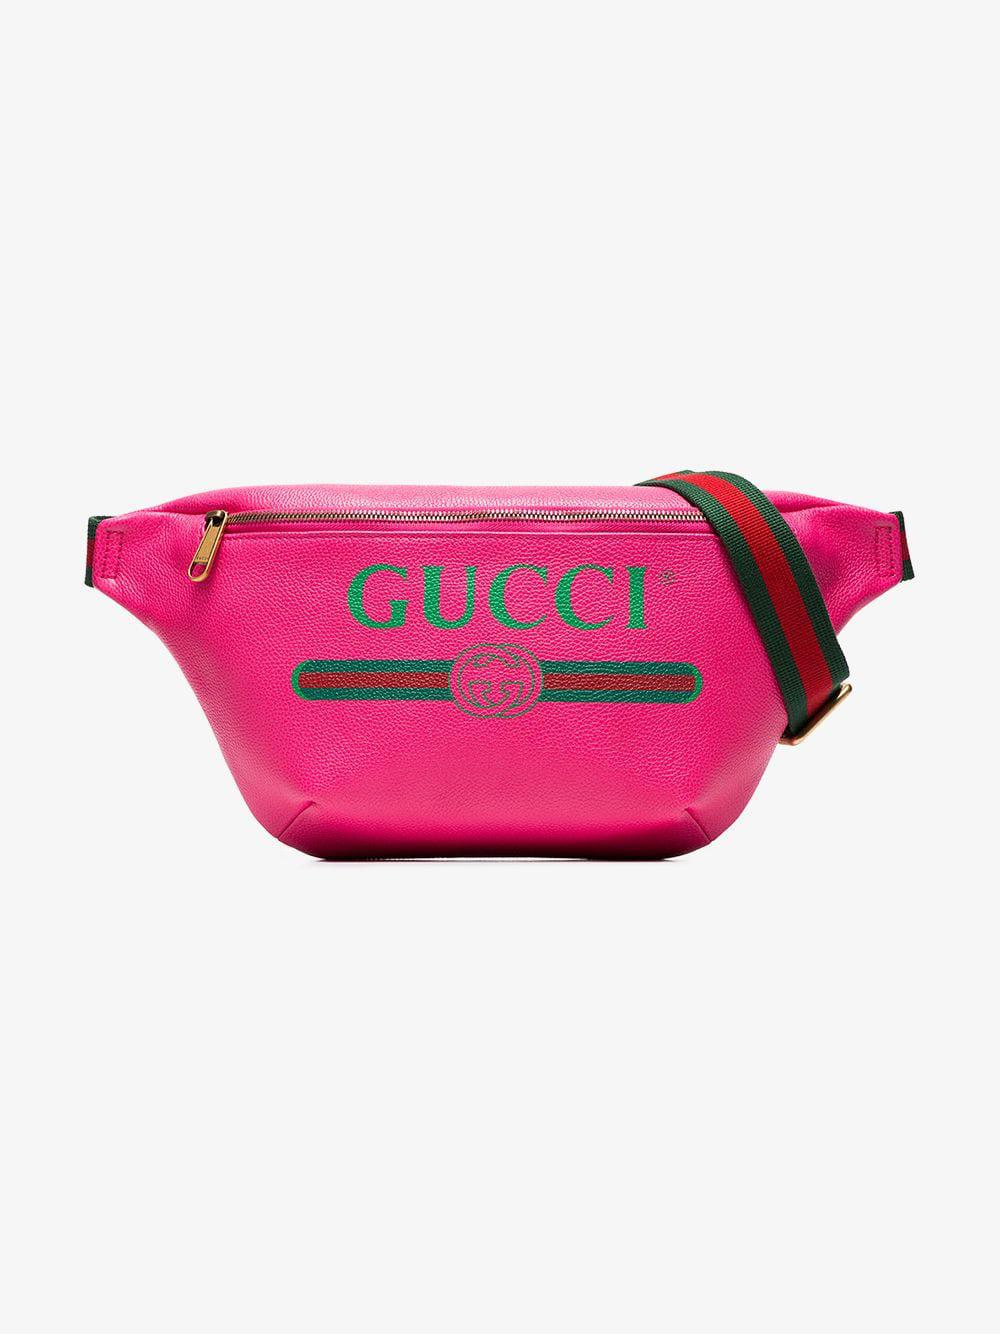 bcfbdd2c8bee8 Lyst - Gucci Print Leather Belt Bag in Pink for Men